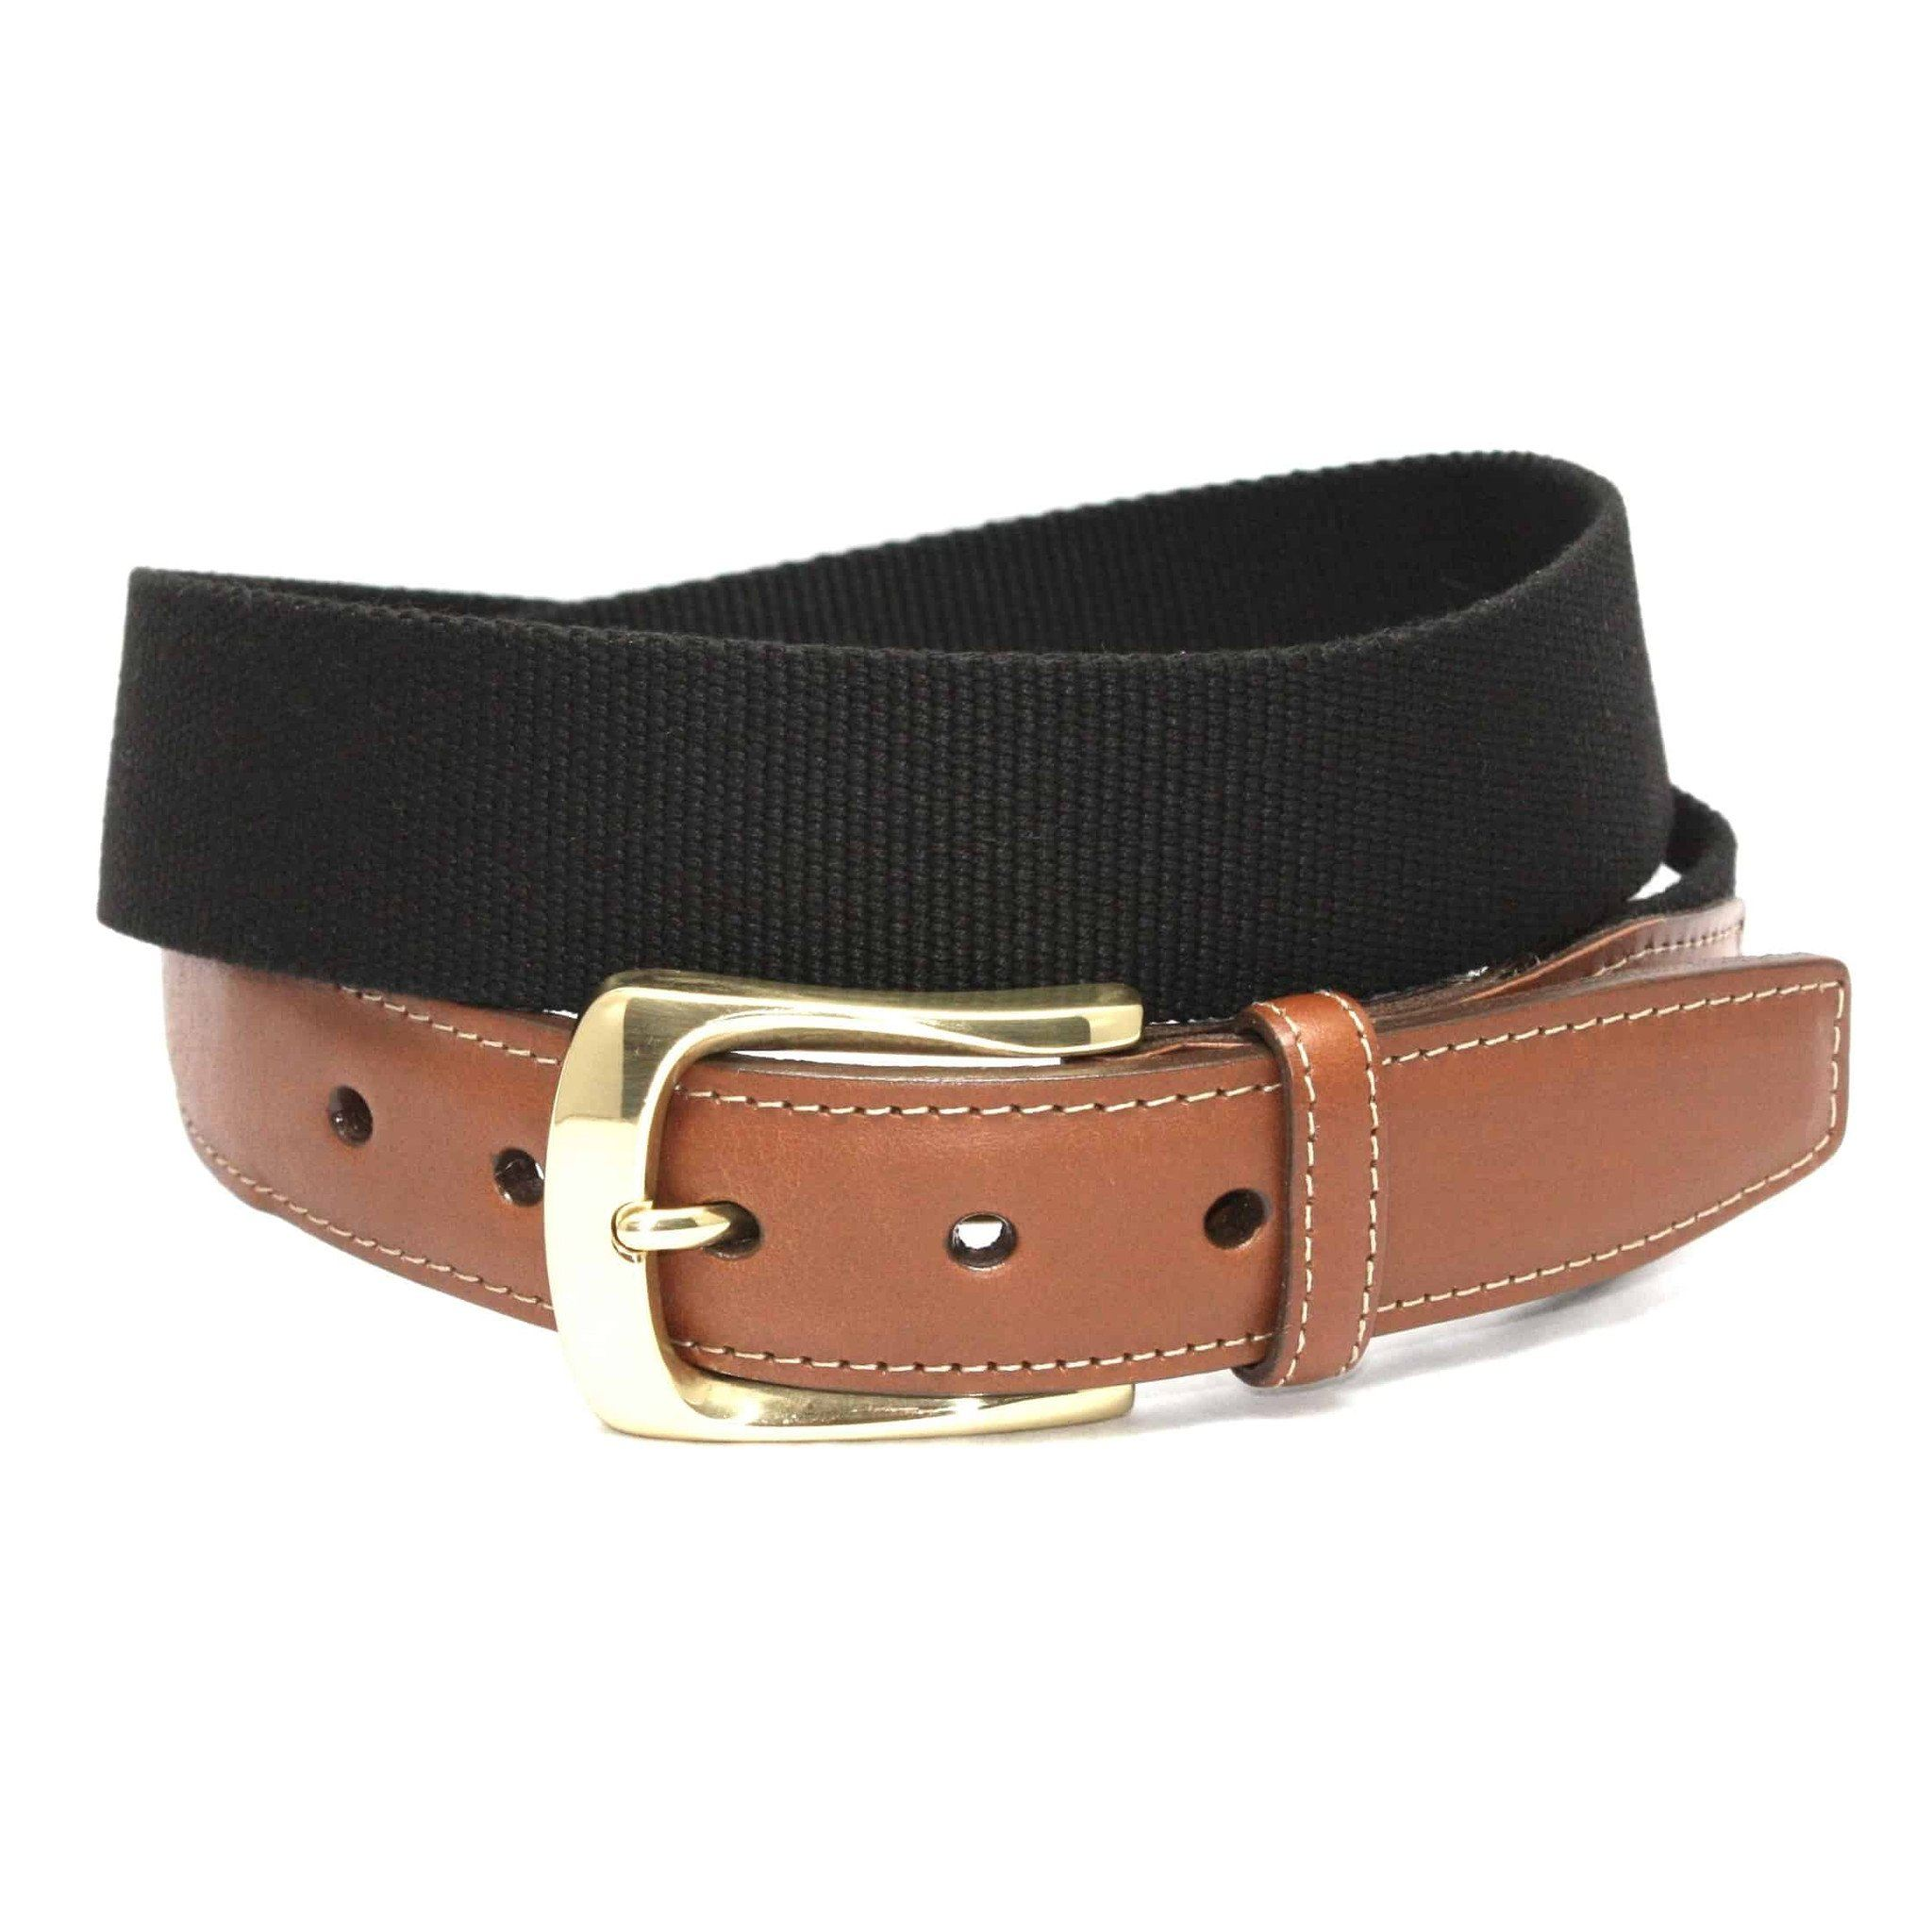 European Ribbed Surcingle Belt - Black,BELT,GentRow.com, | GentRow.com